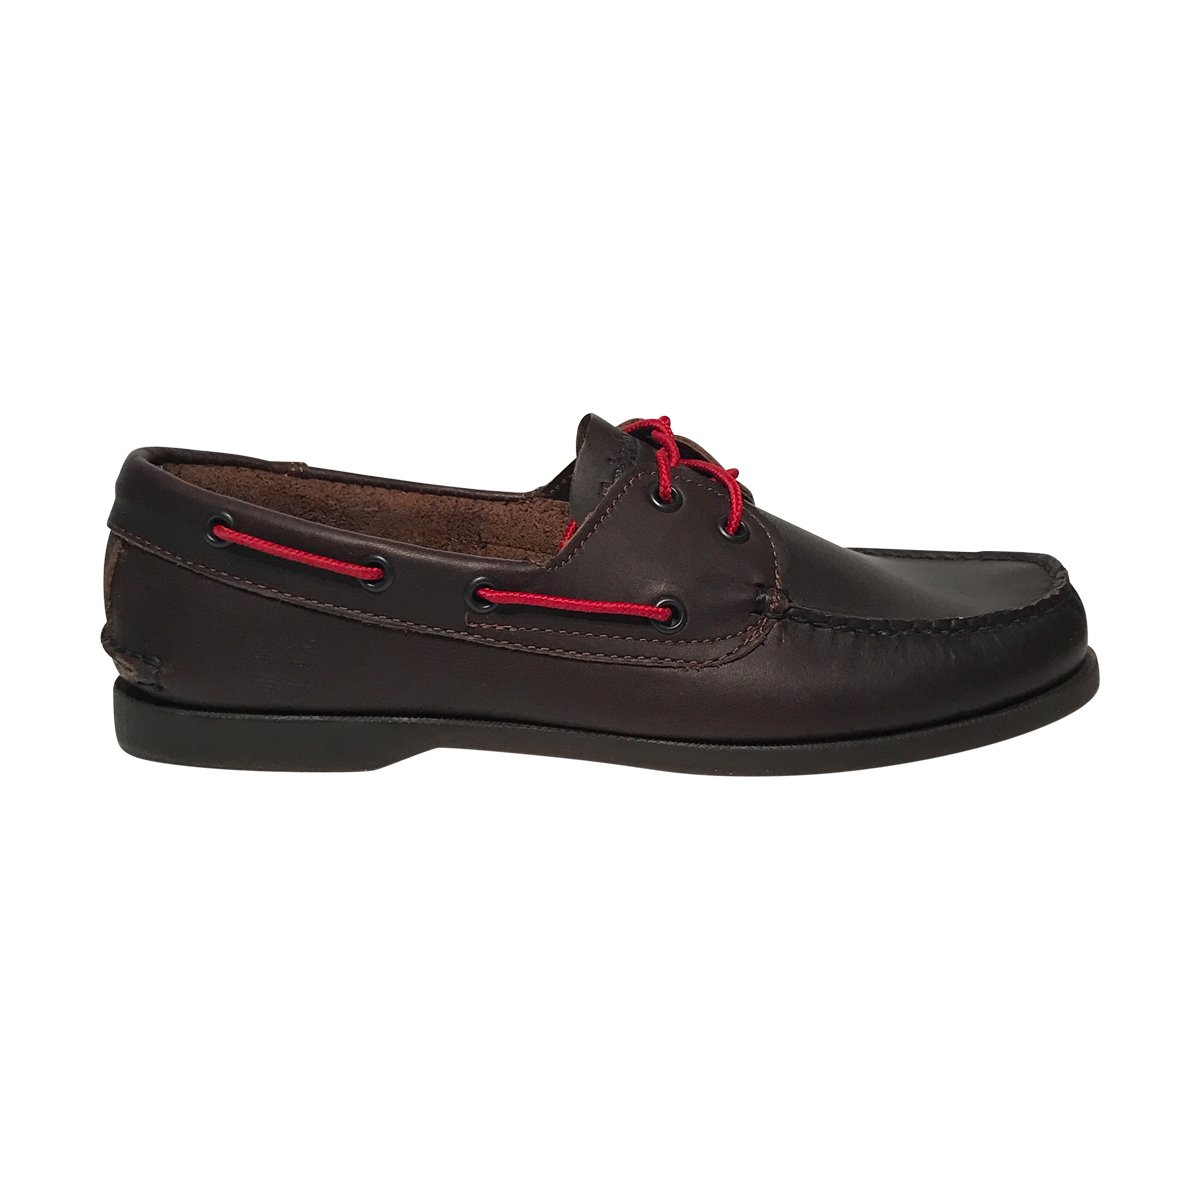 Timberland Mens Classic Two-Eye Boat Shoe (Boat Dark Brown-Red, 10.5) by Timberland